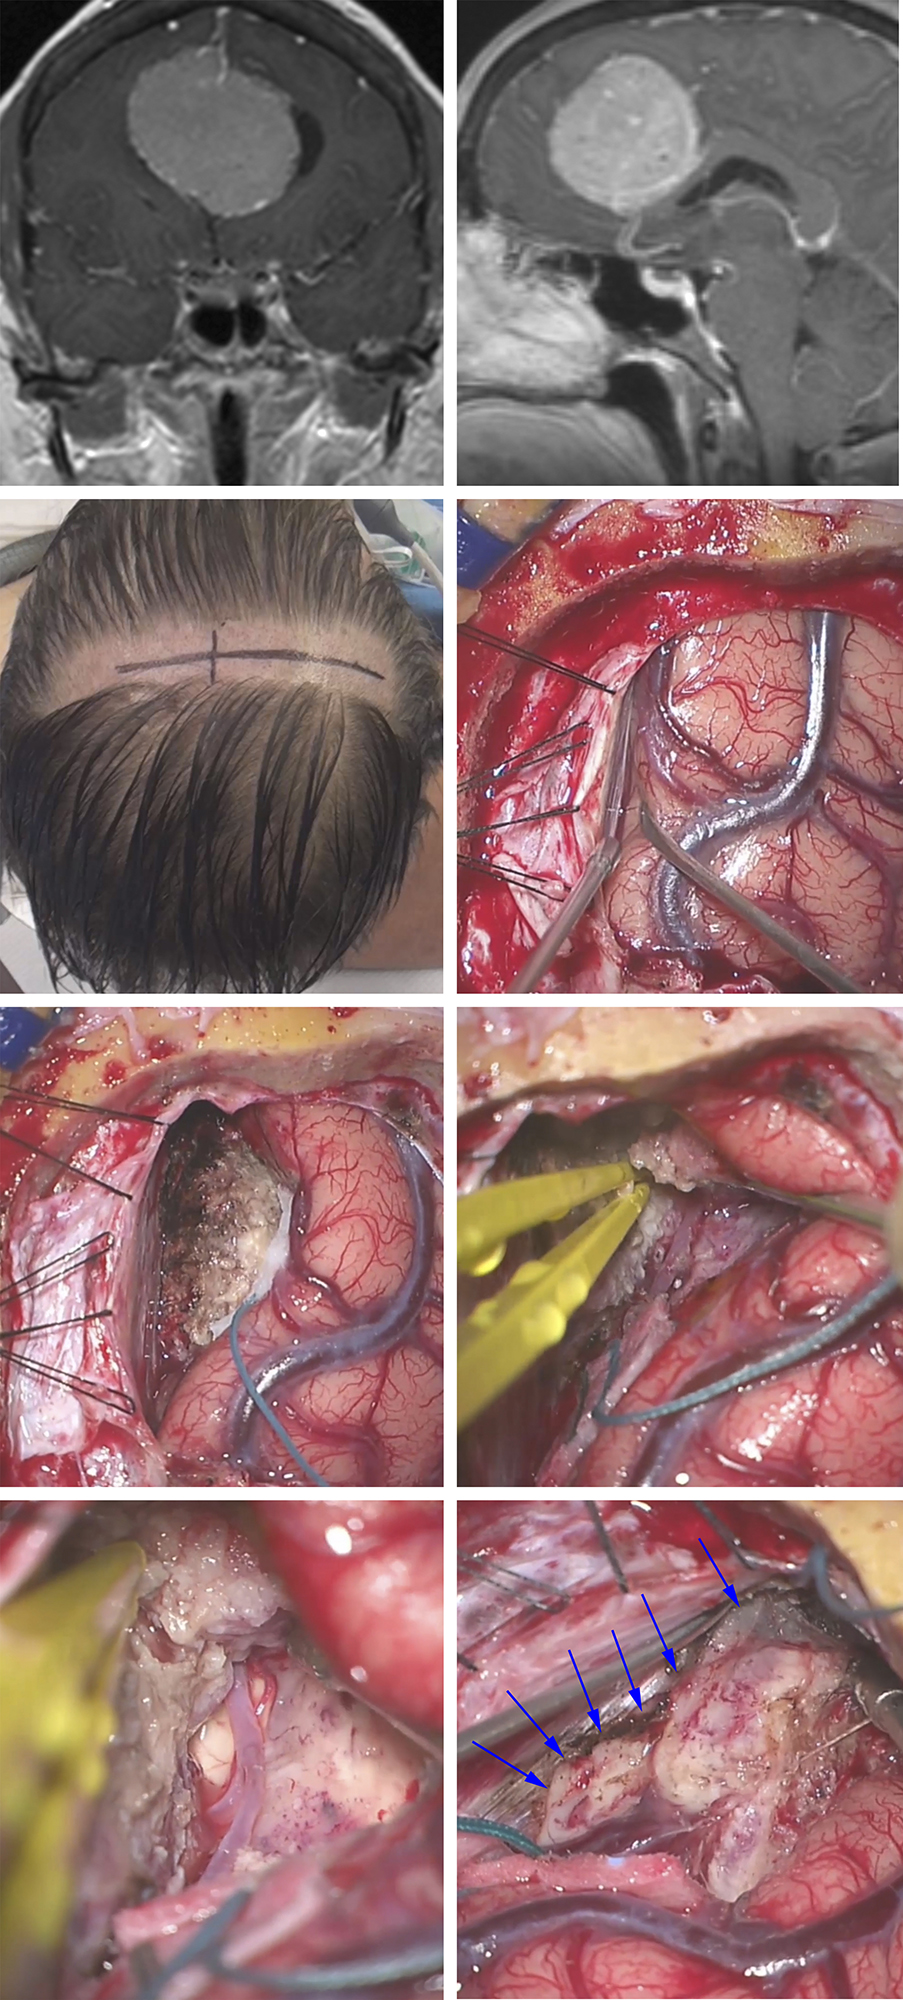 Figure 8: This bilateral parafalcine meningioma (upper row) was removed via a unilateral right-sided parasagittal transfalcine approach. Traction sutures in the superior falx (second row) gently mobilized the superior sagittal sinus. The tumor on the right-side of the falx was aggressively devascularized, debulked and the callosomarginal artery dissected (third row). Ultimately, further tumor removal uncovered the pericallosal artery and the contralateral tumor was excised via the transfalcine approach and removal of the affected section of the falx (arrows)(last row).